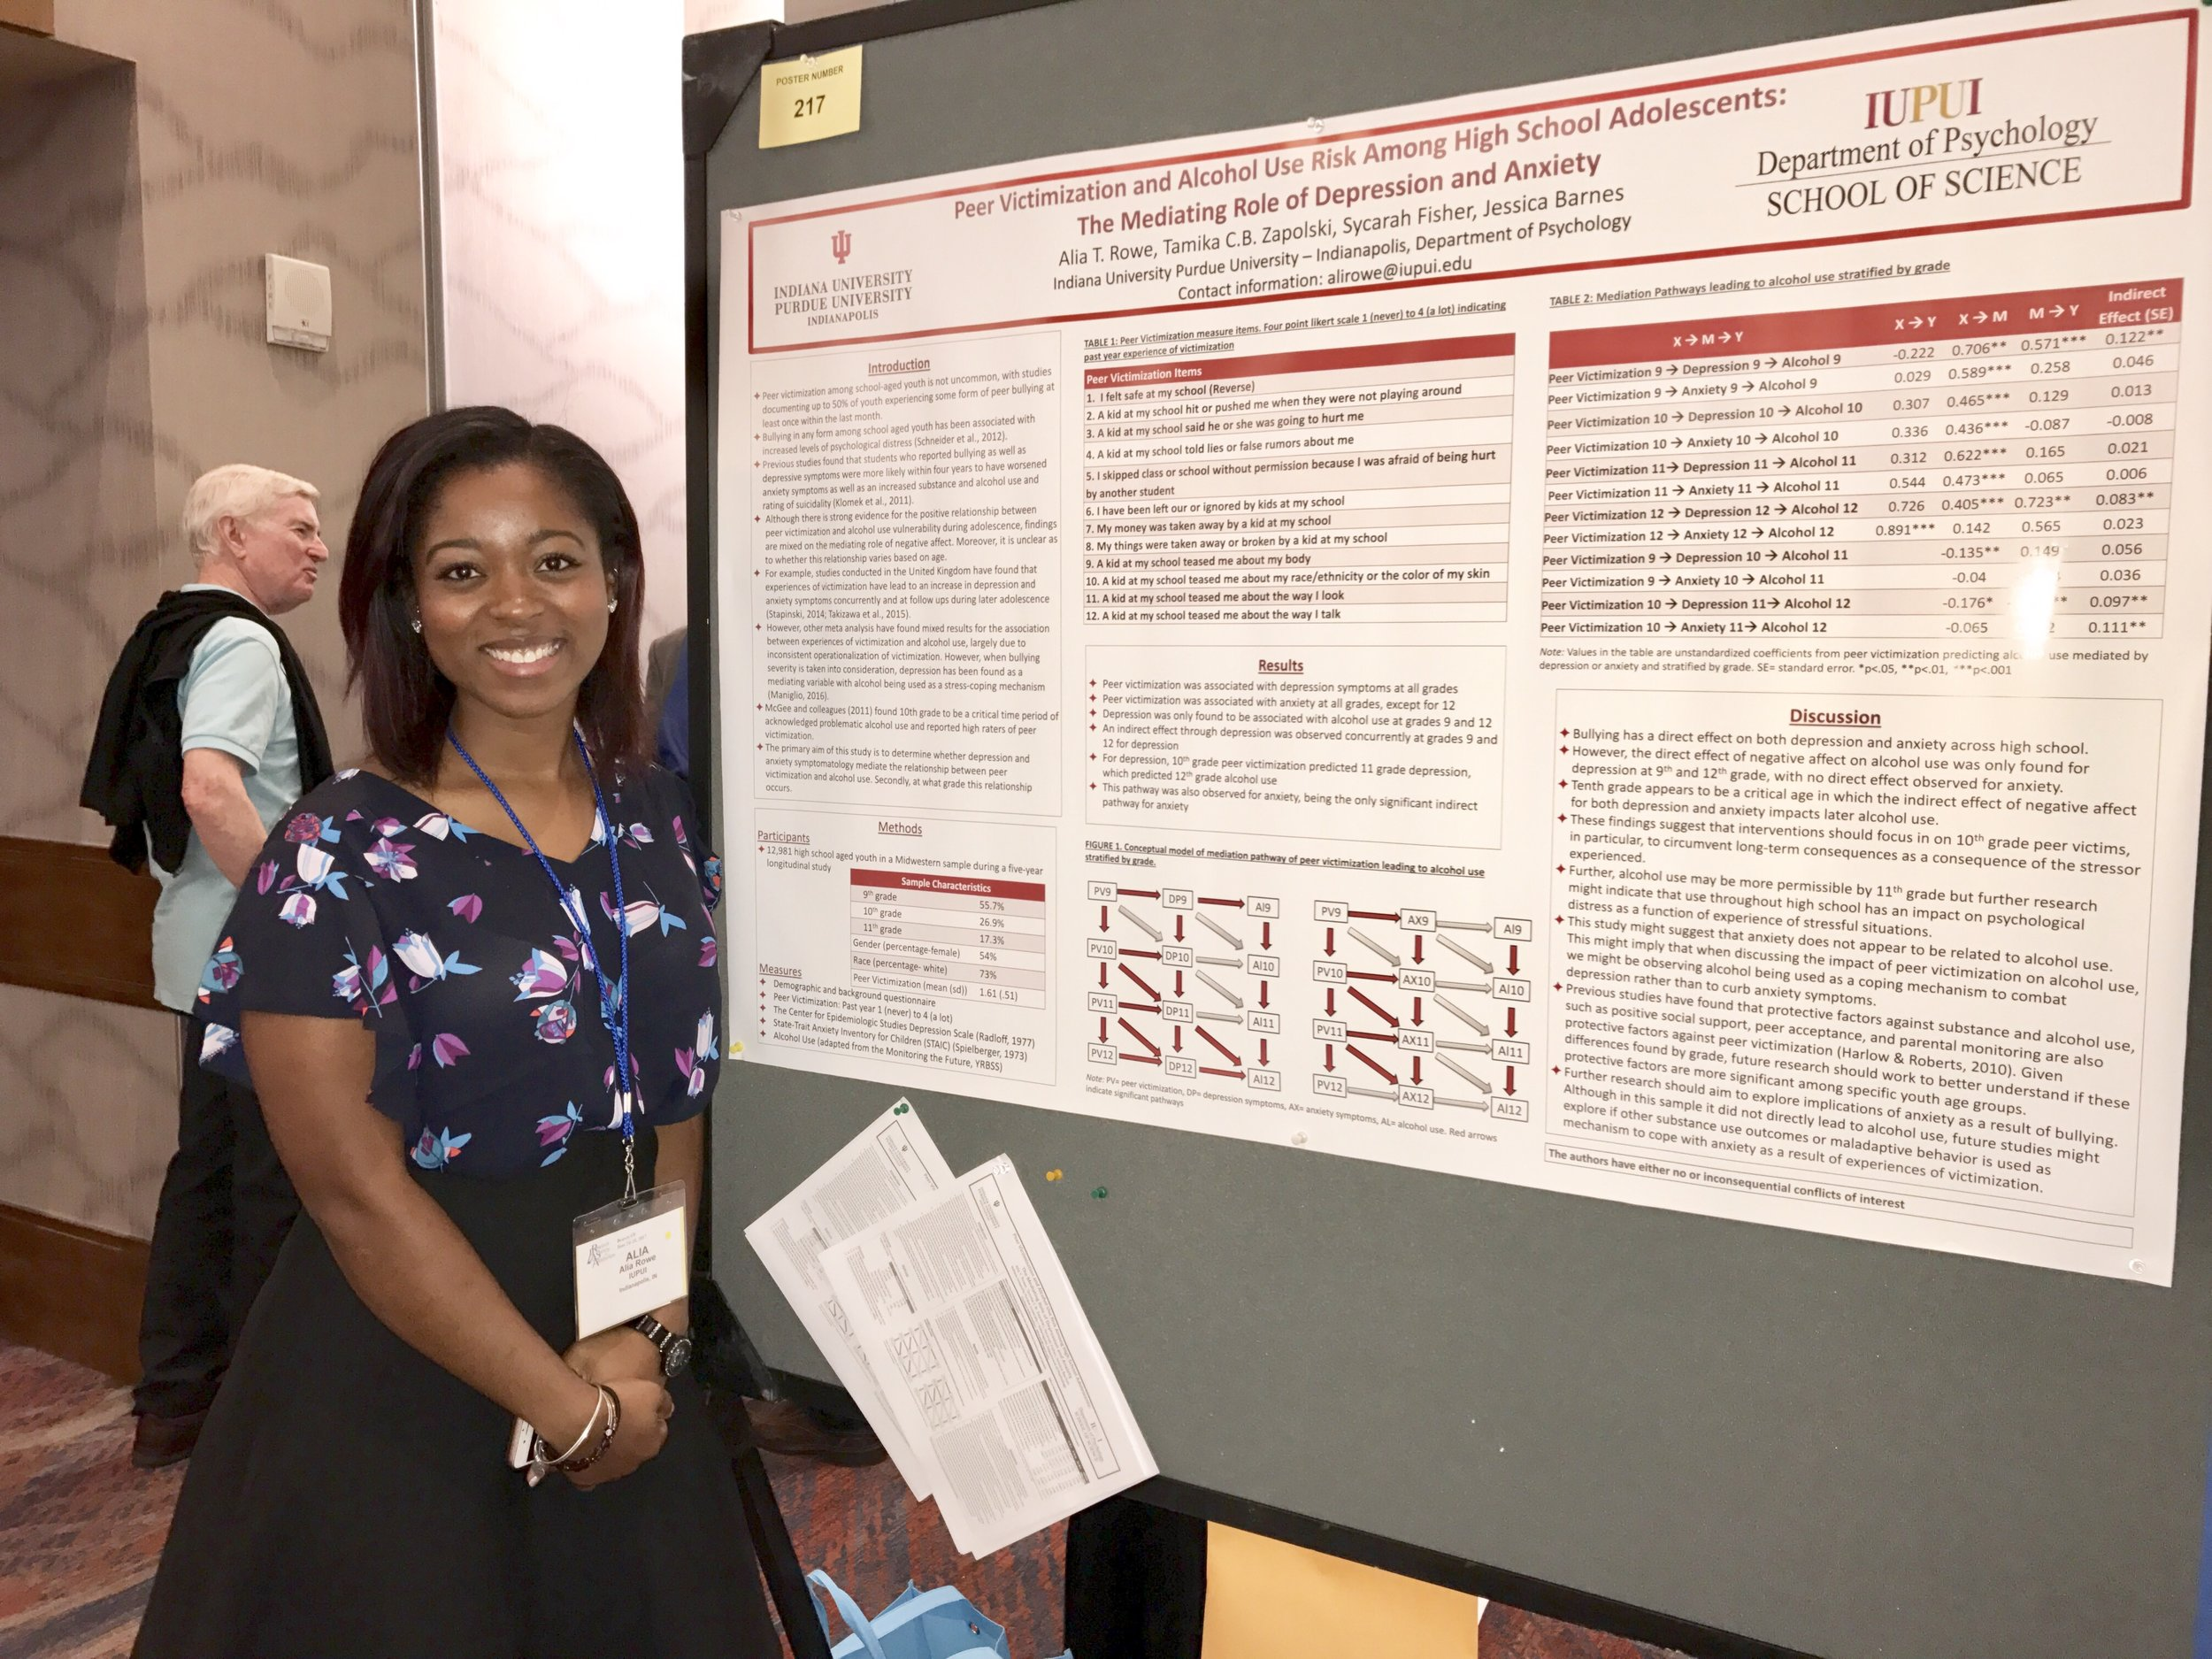 Alia Rowe and her poster at RSA.